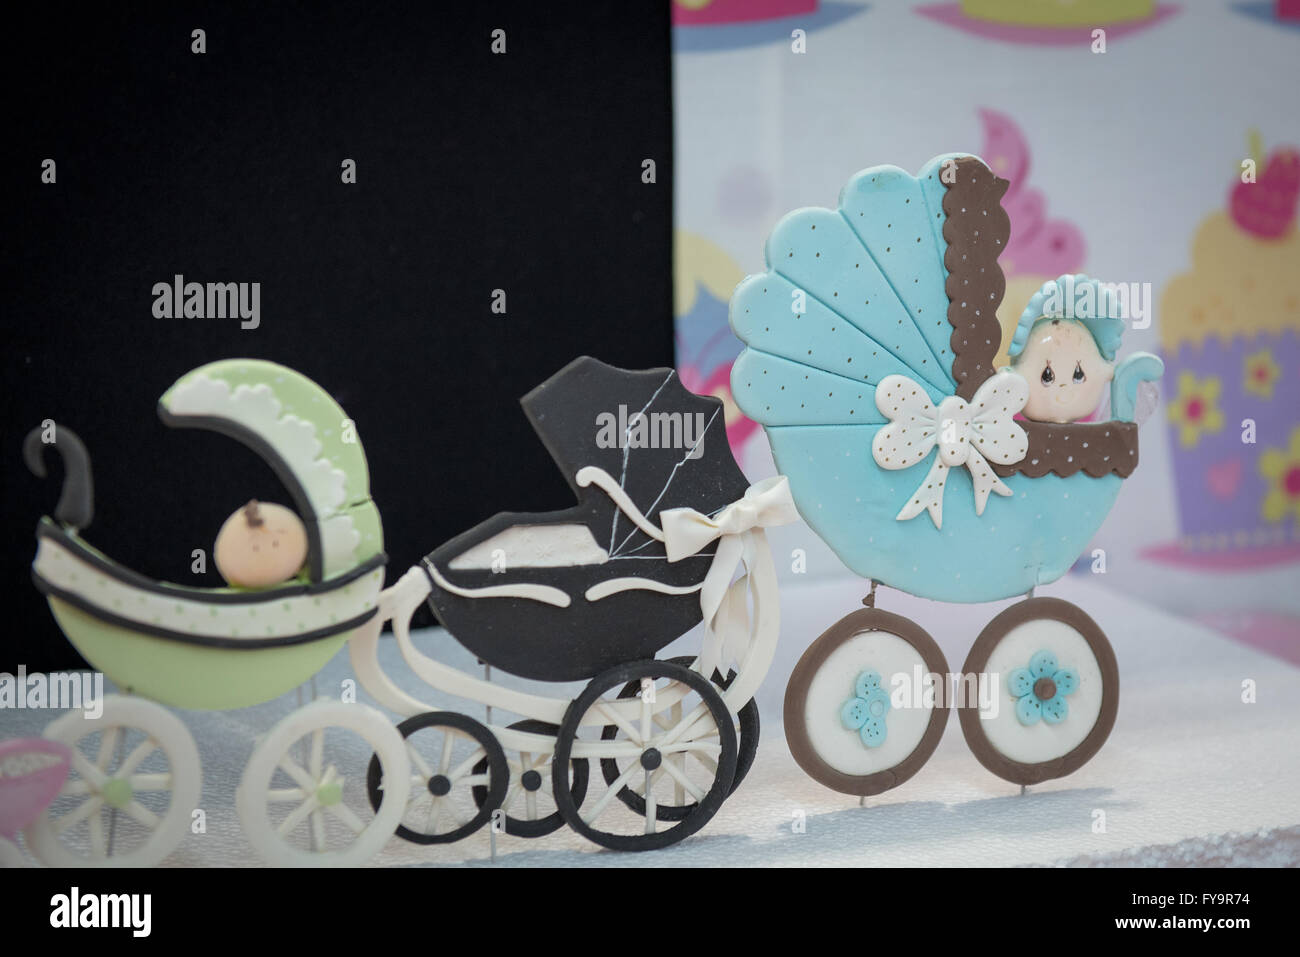 Prams With Toddlers New Baby Shower Decorations Cake